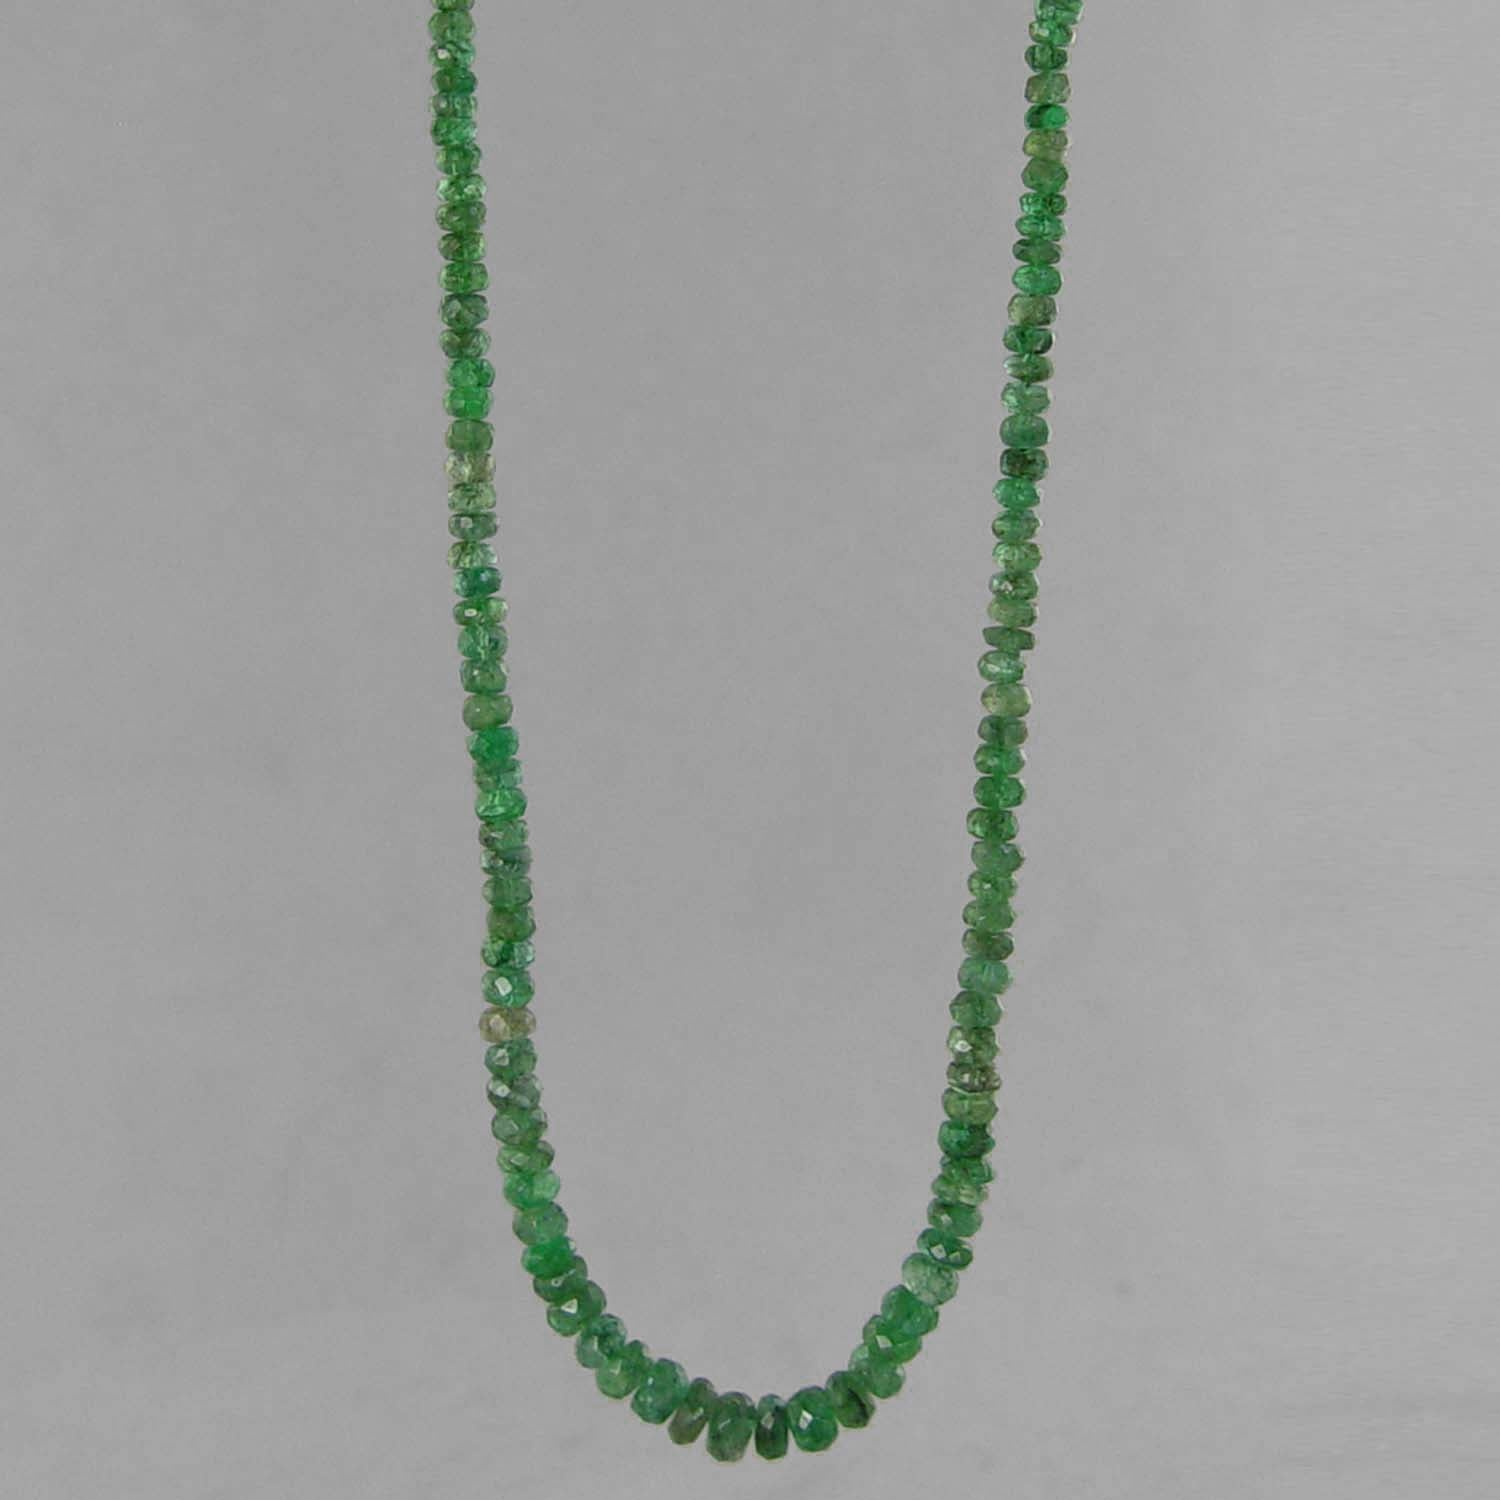 "Emerald Small Faceted Rondelle Graduated 19"" Necklace - 49 ct"